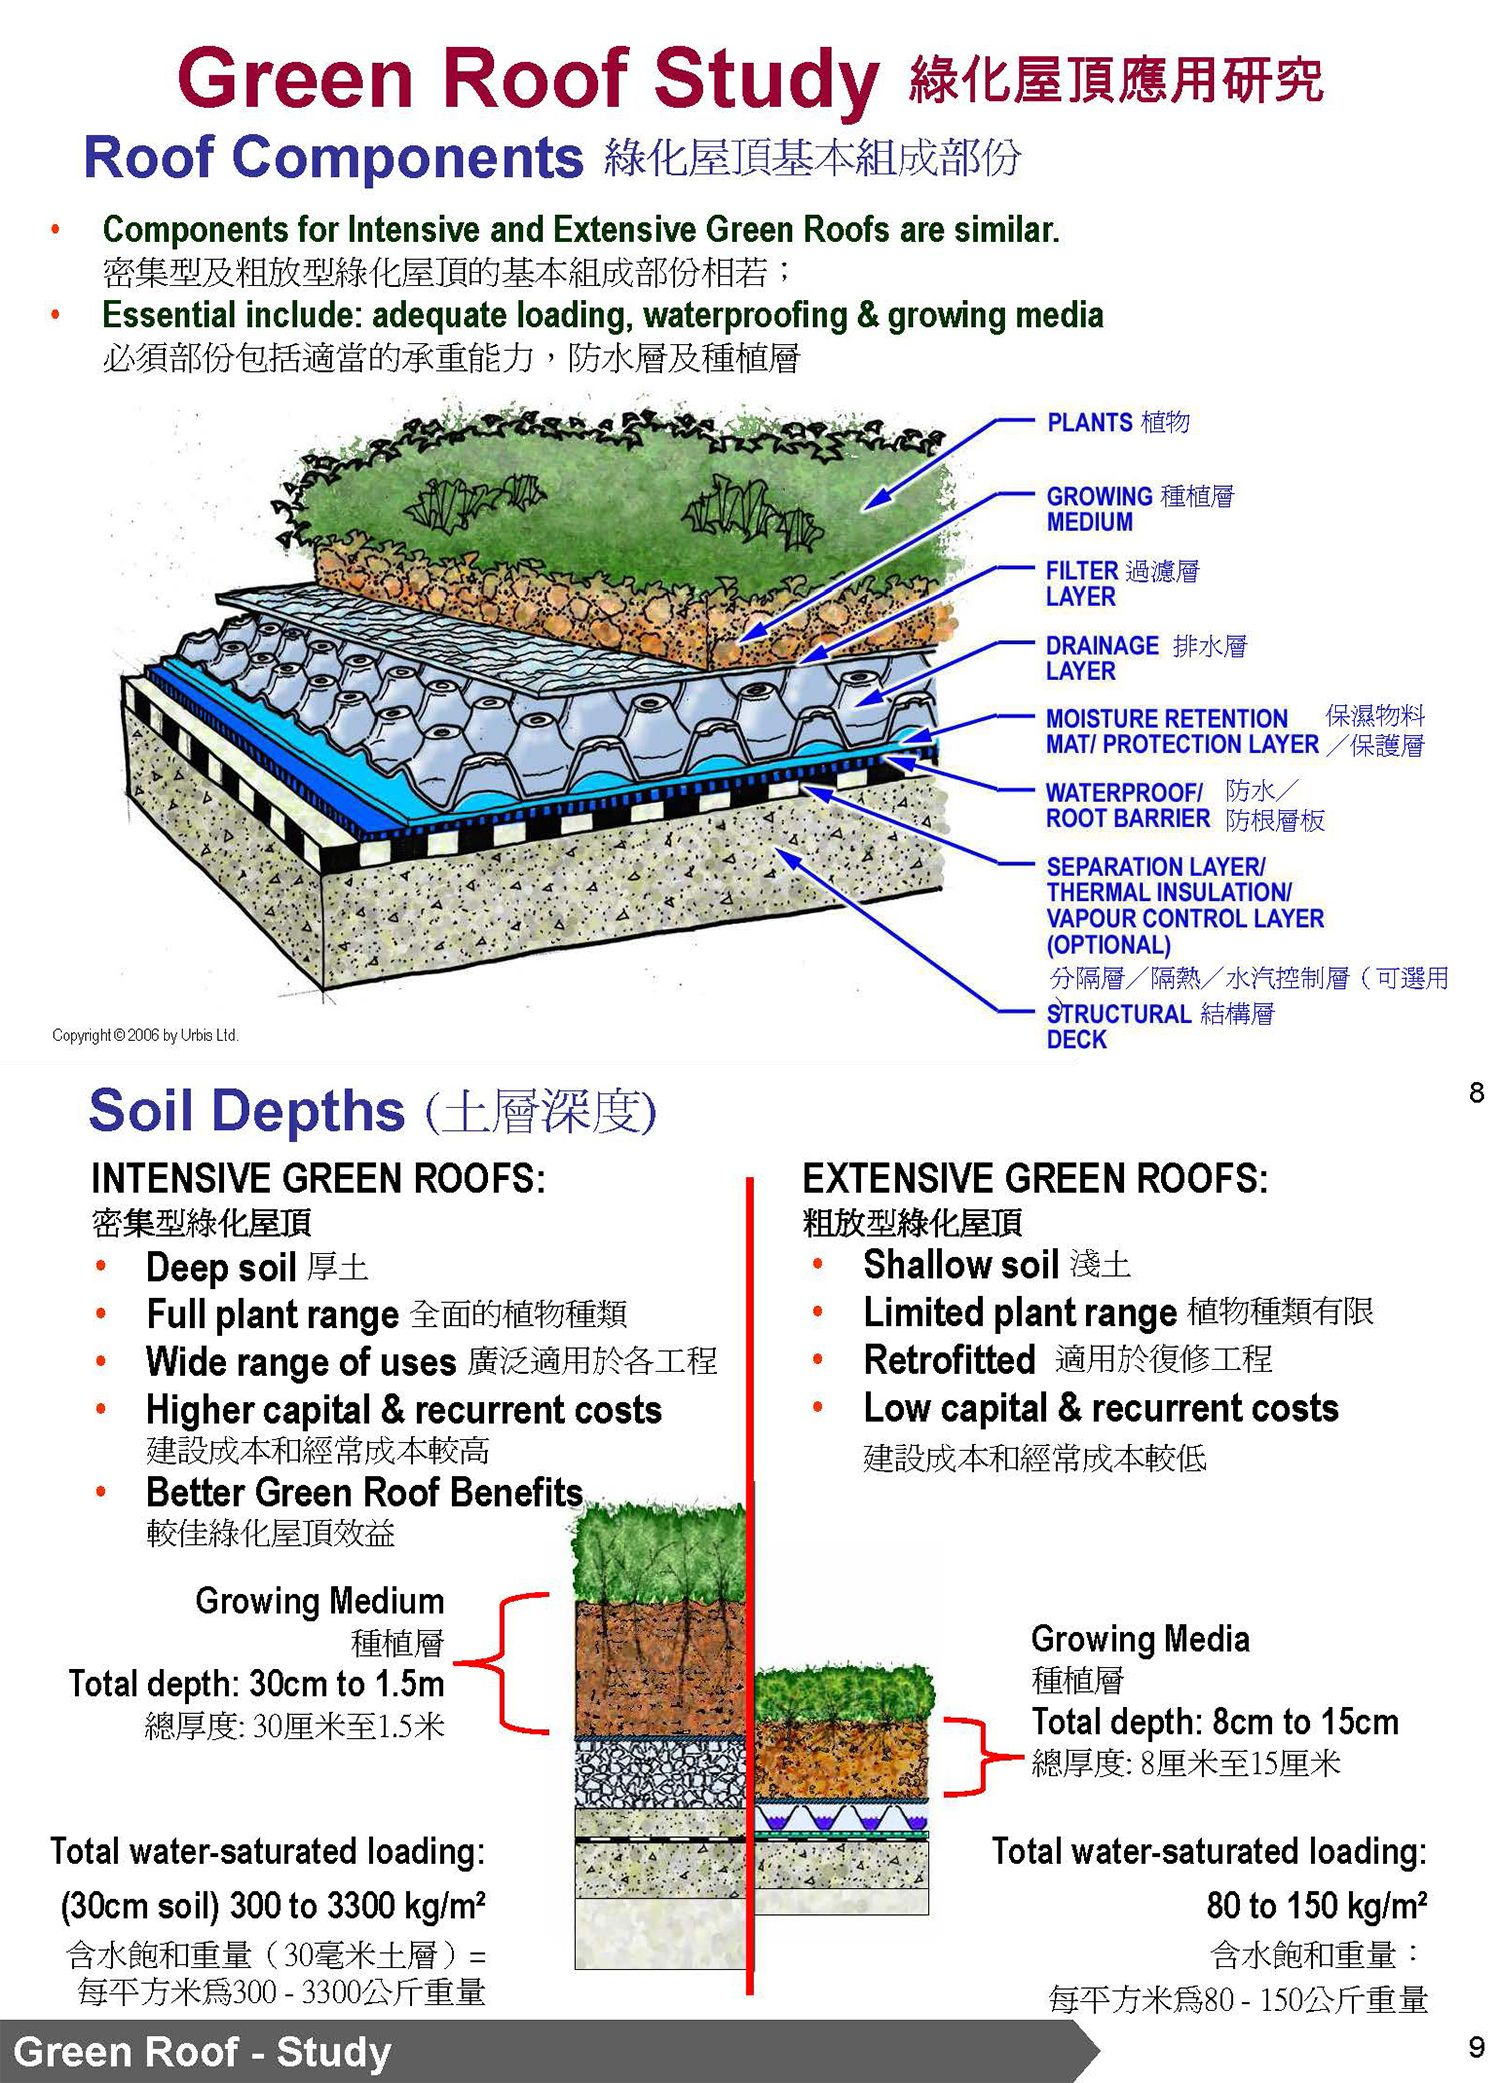 Green Roof Components And Soil Depths Extracted From Green Roof Vertical Greening Applications In Go Green Roof Architectural Services Extensive Green Roof